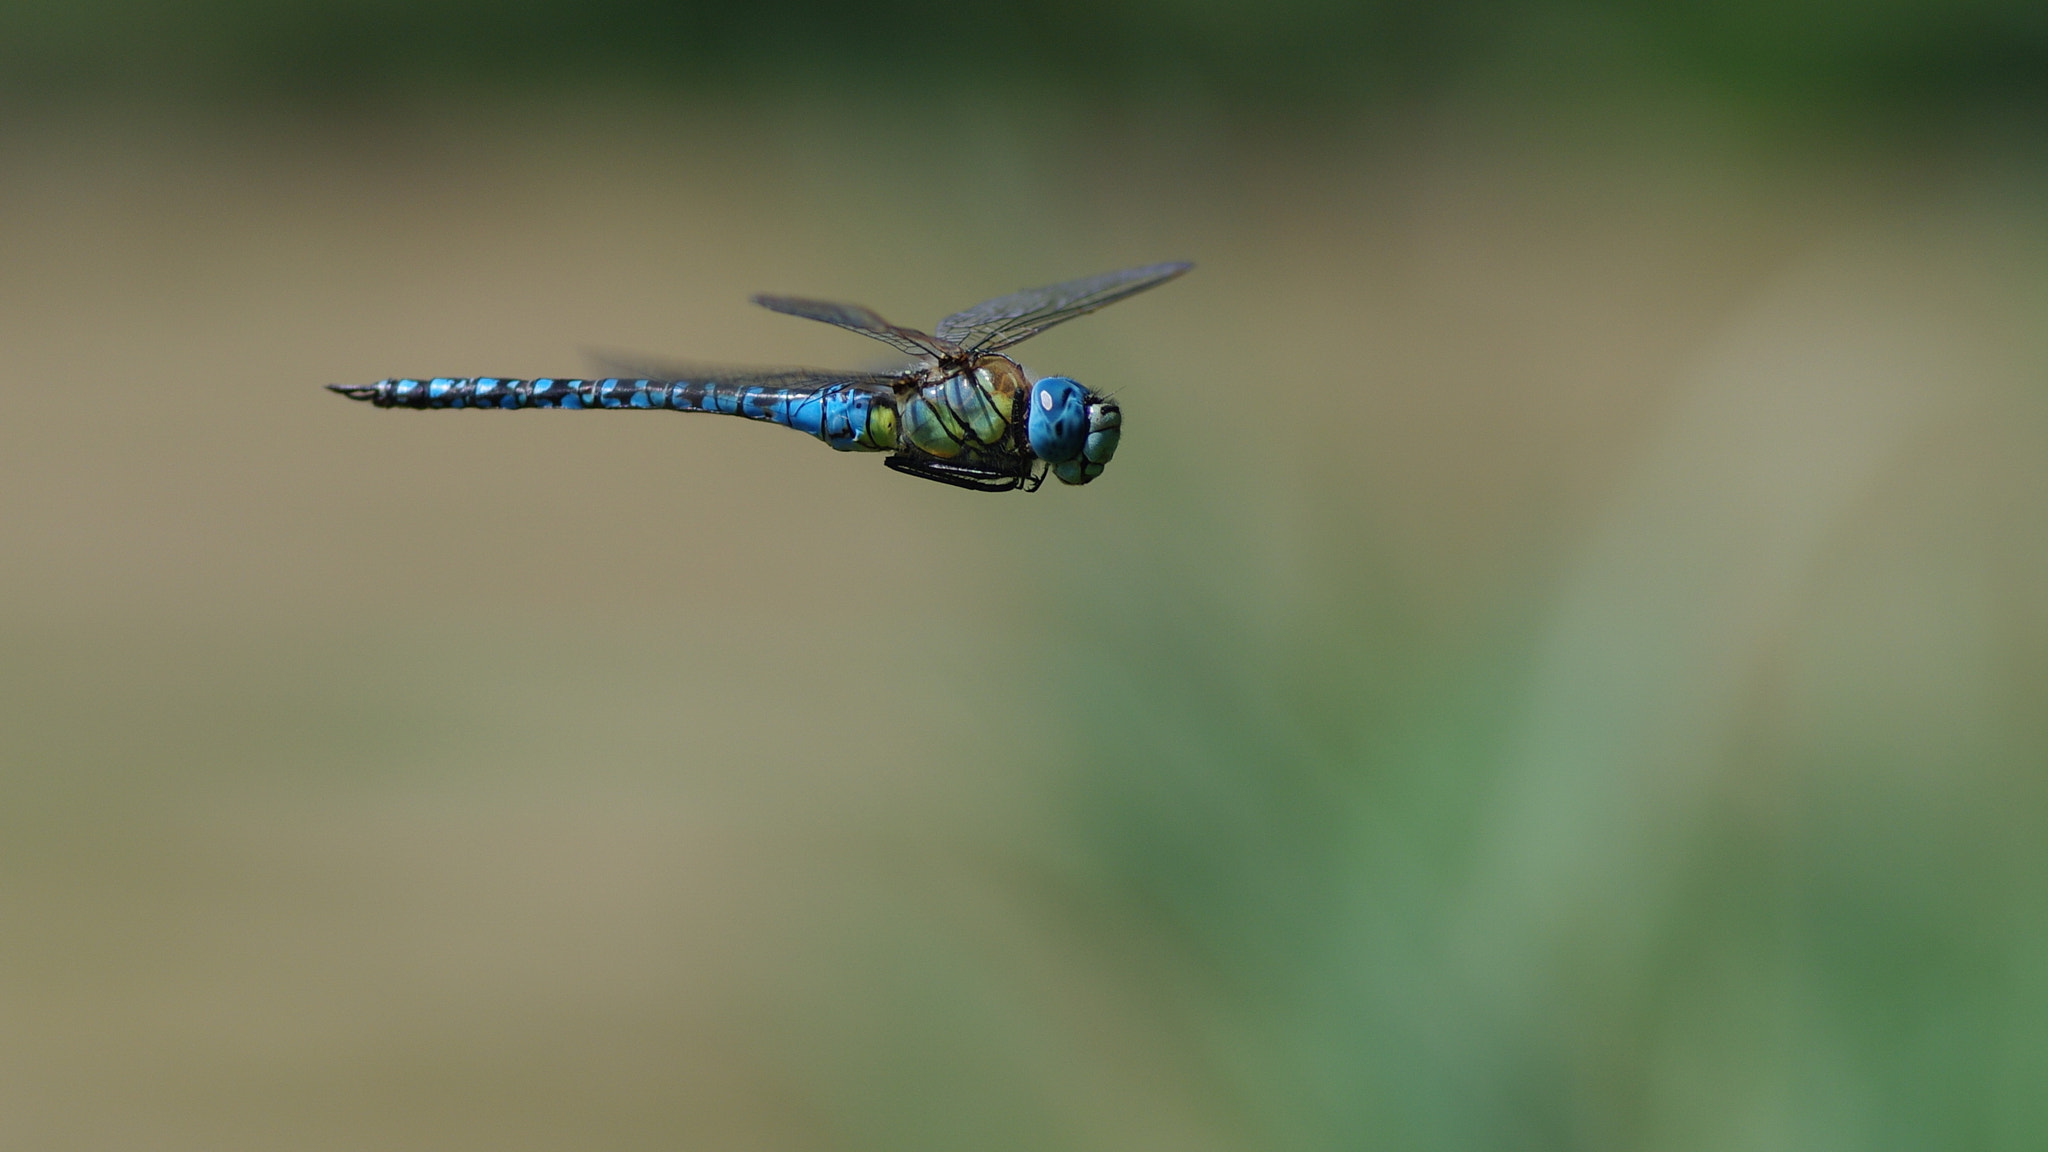 Photograph Hovering dragon by Marc LEVASSEUR on 500px